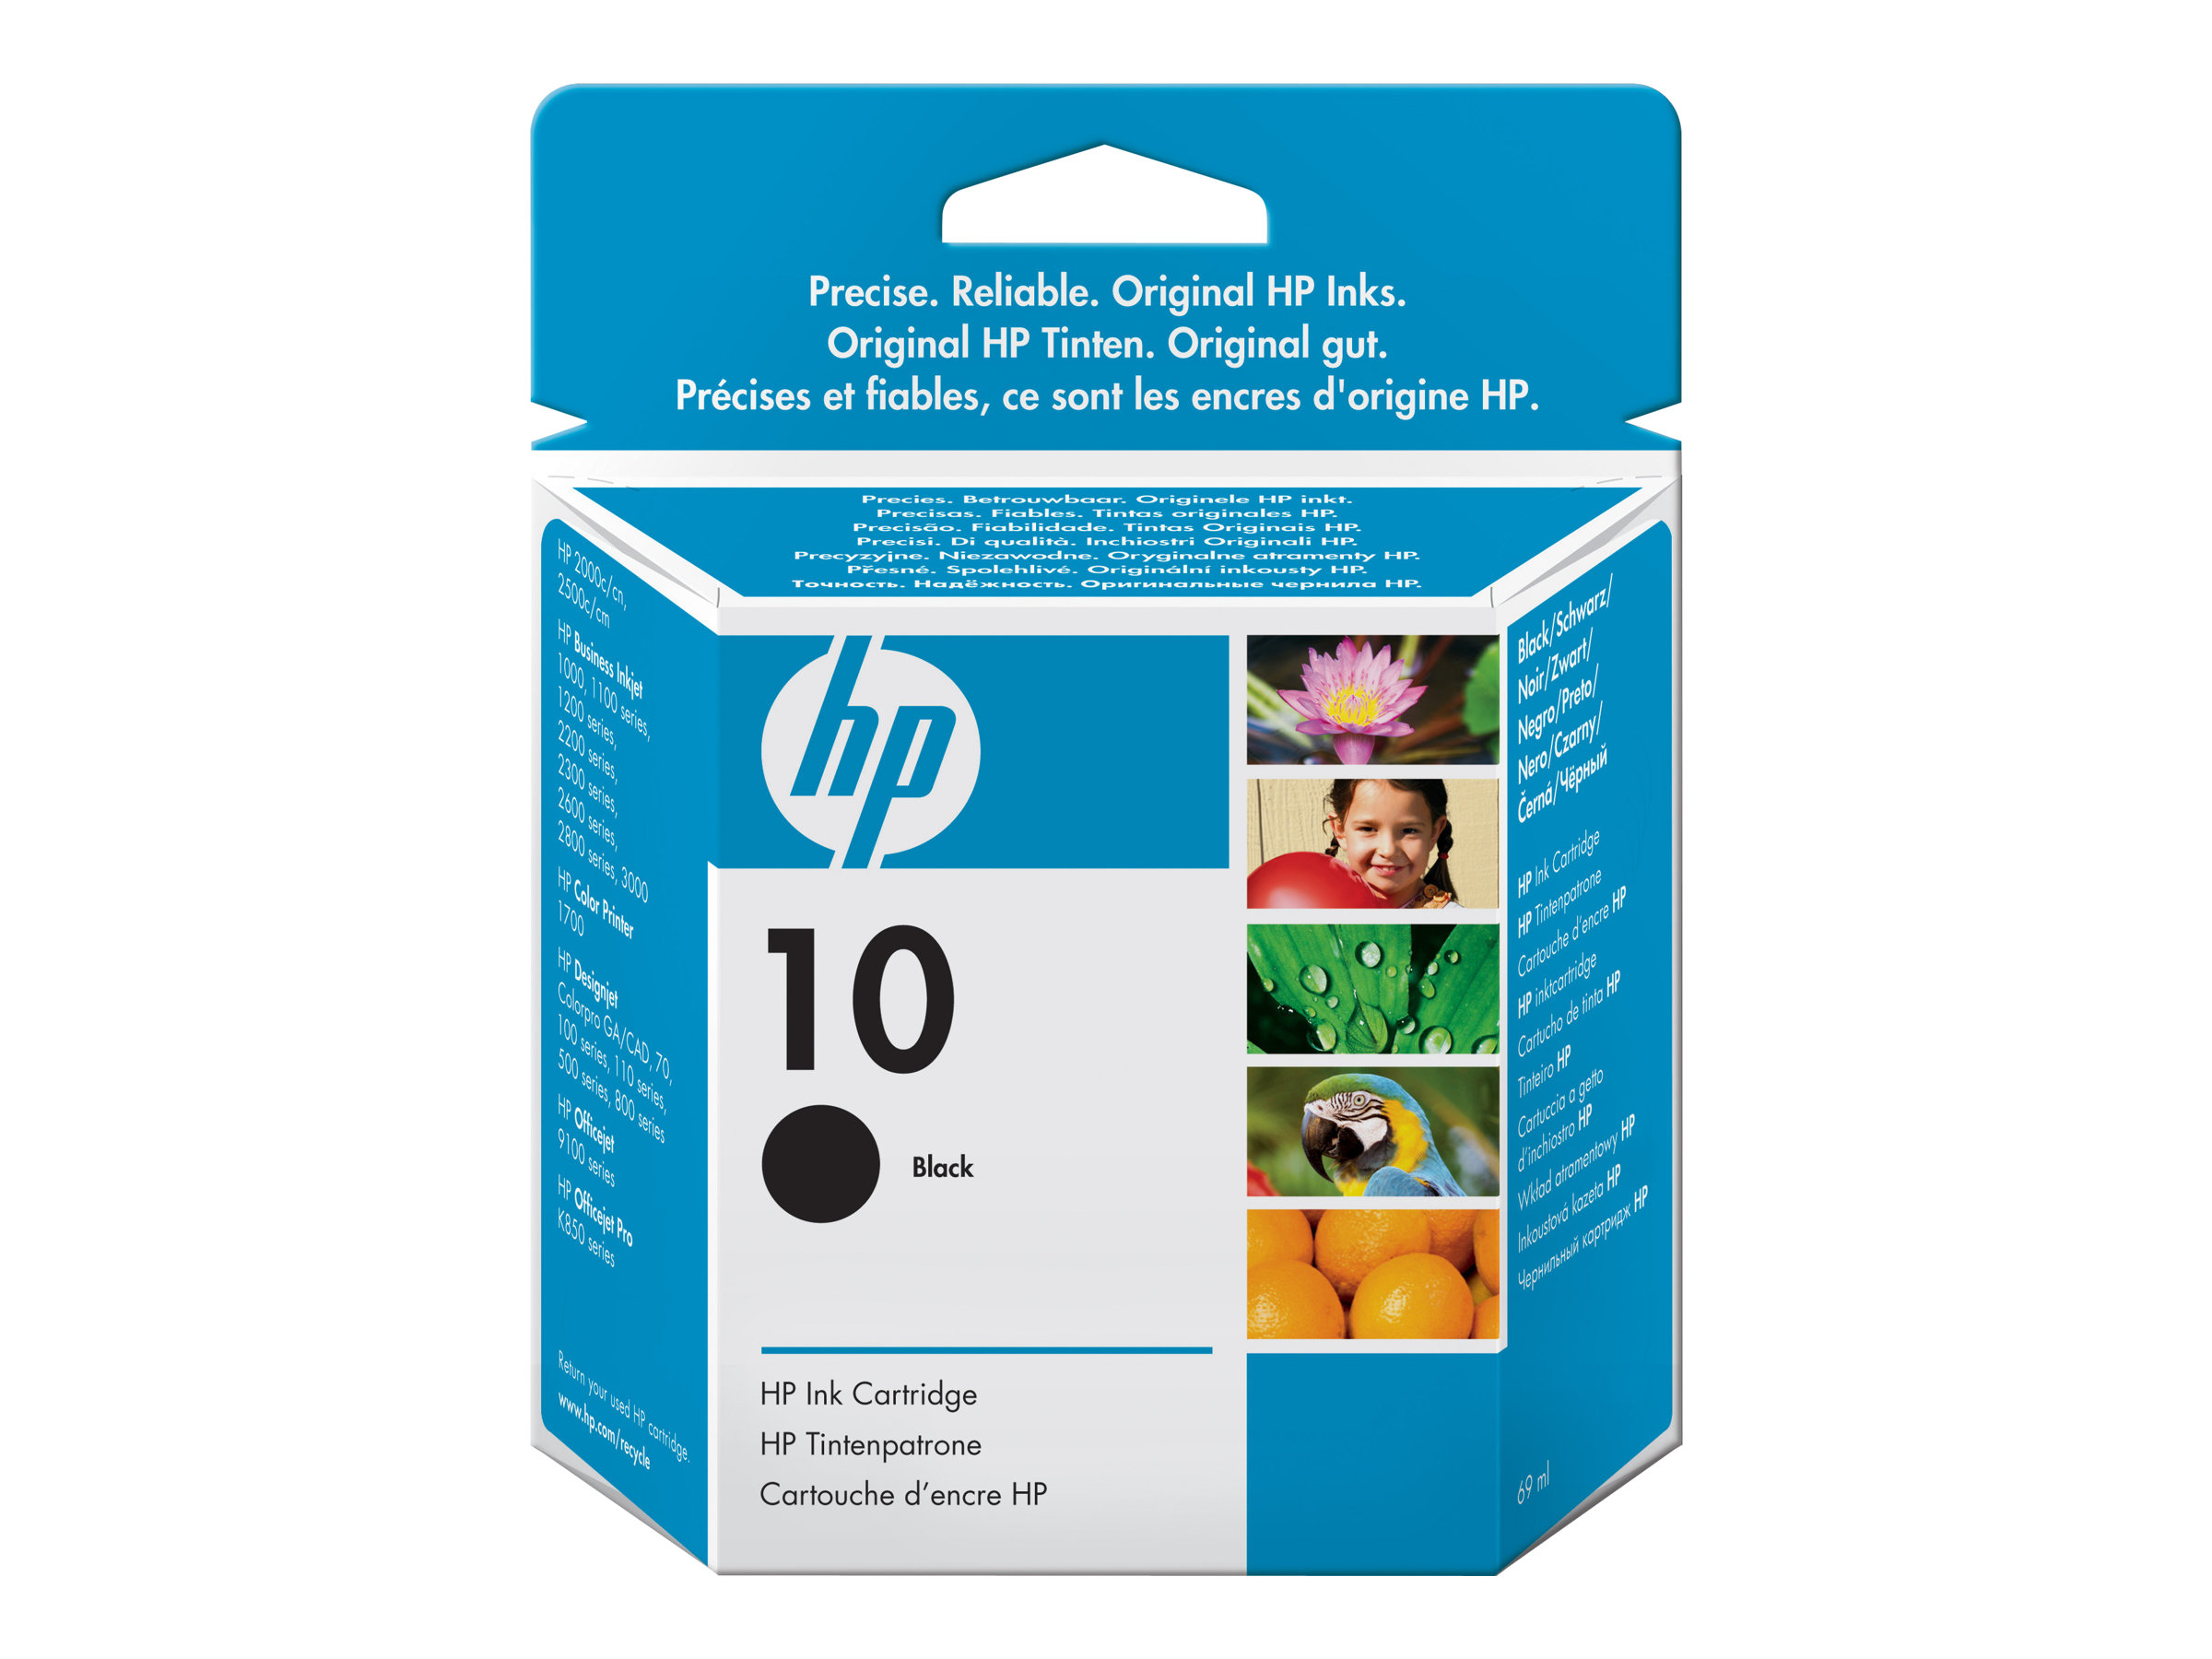 HP 10 - 69 ml - Schwarz - Original - Tintenpatrone - für Business Inkjet 1000, 1200, 2300, 2800; DesignJet 110, 500, 70, 820; Officejet Pro K850